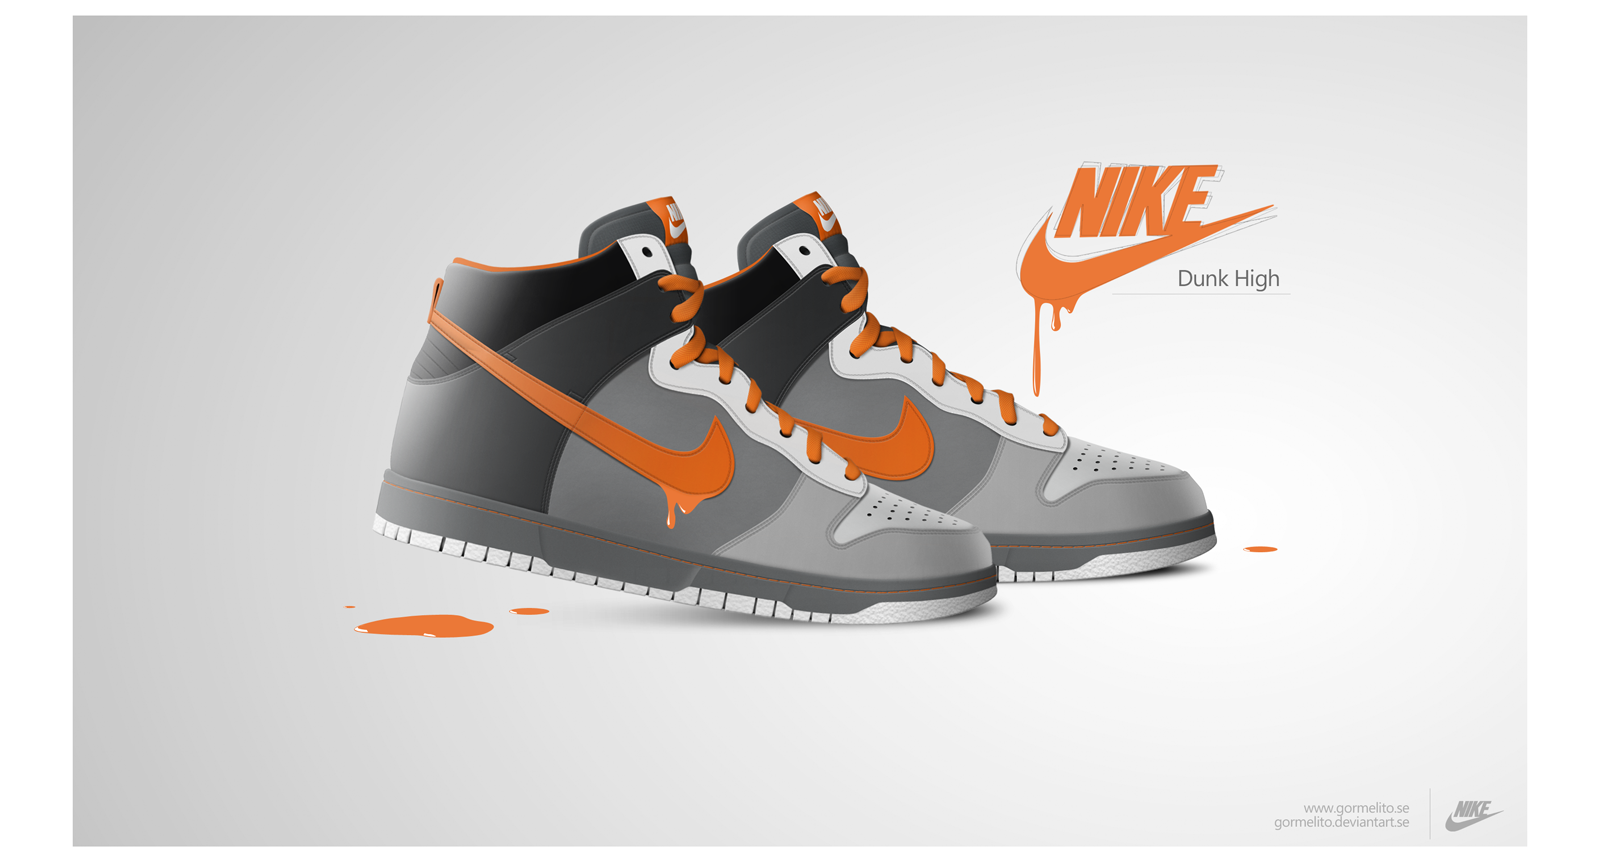 Nike Dunk High by gormelito